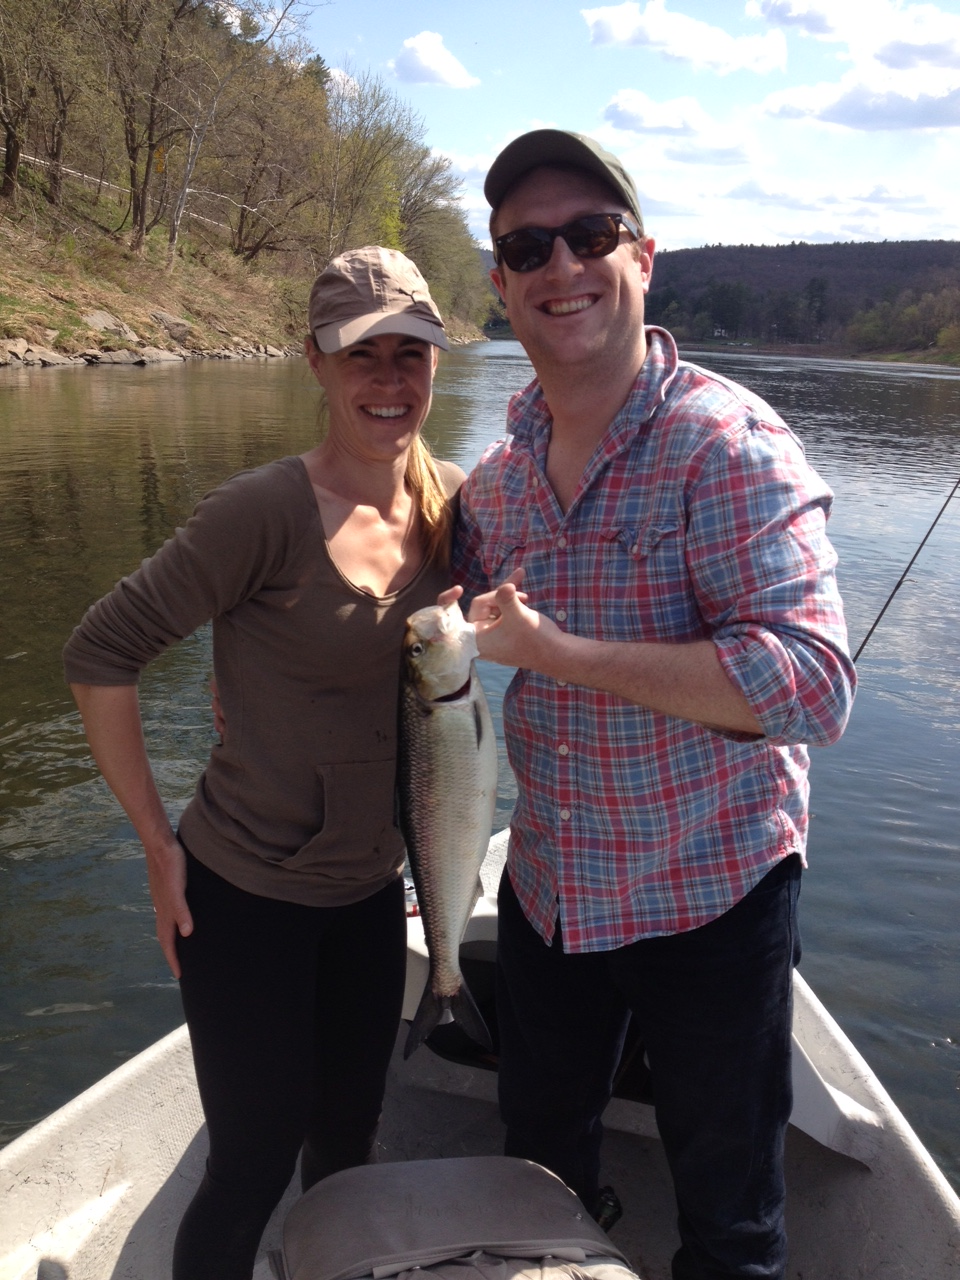 The NYC couple boated 7 Shad today, nice work!